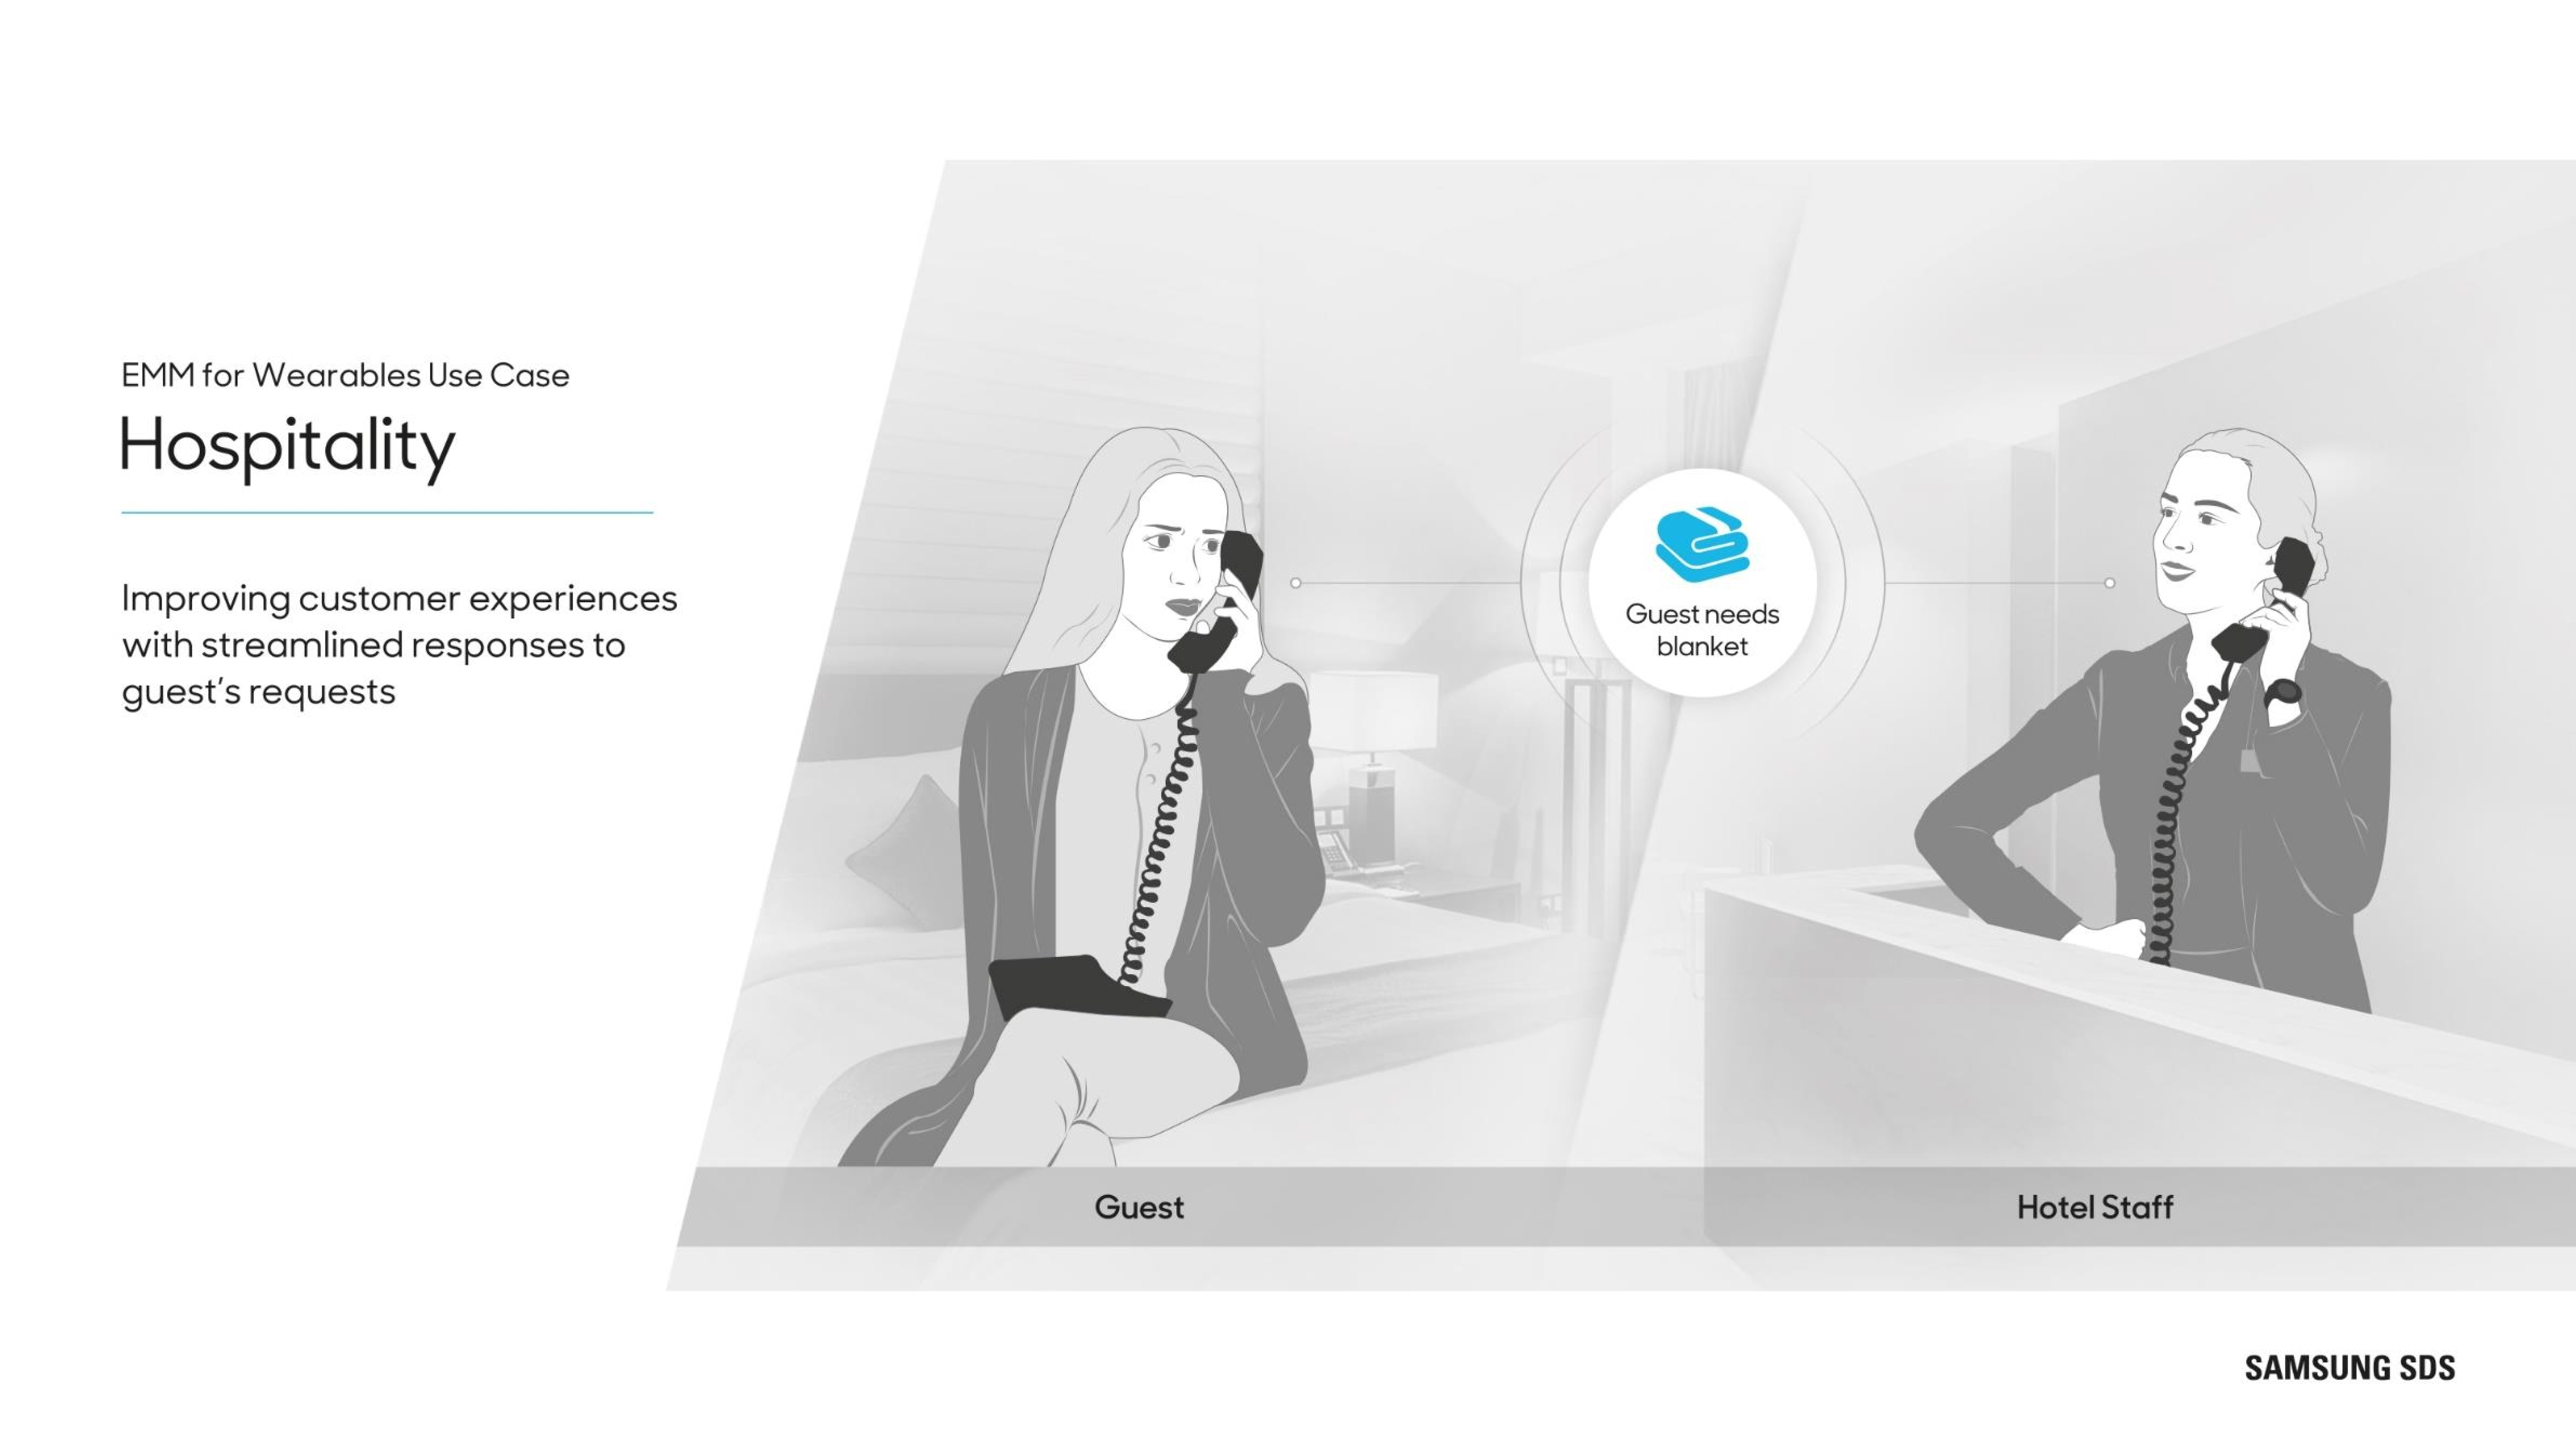 Wearables in Hospitality Improving customer experiences with streamlined responses to guest's requests.